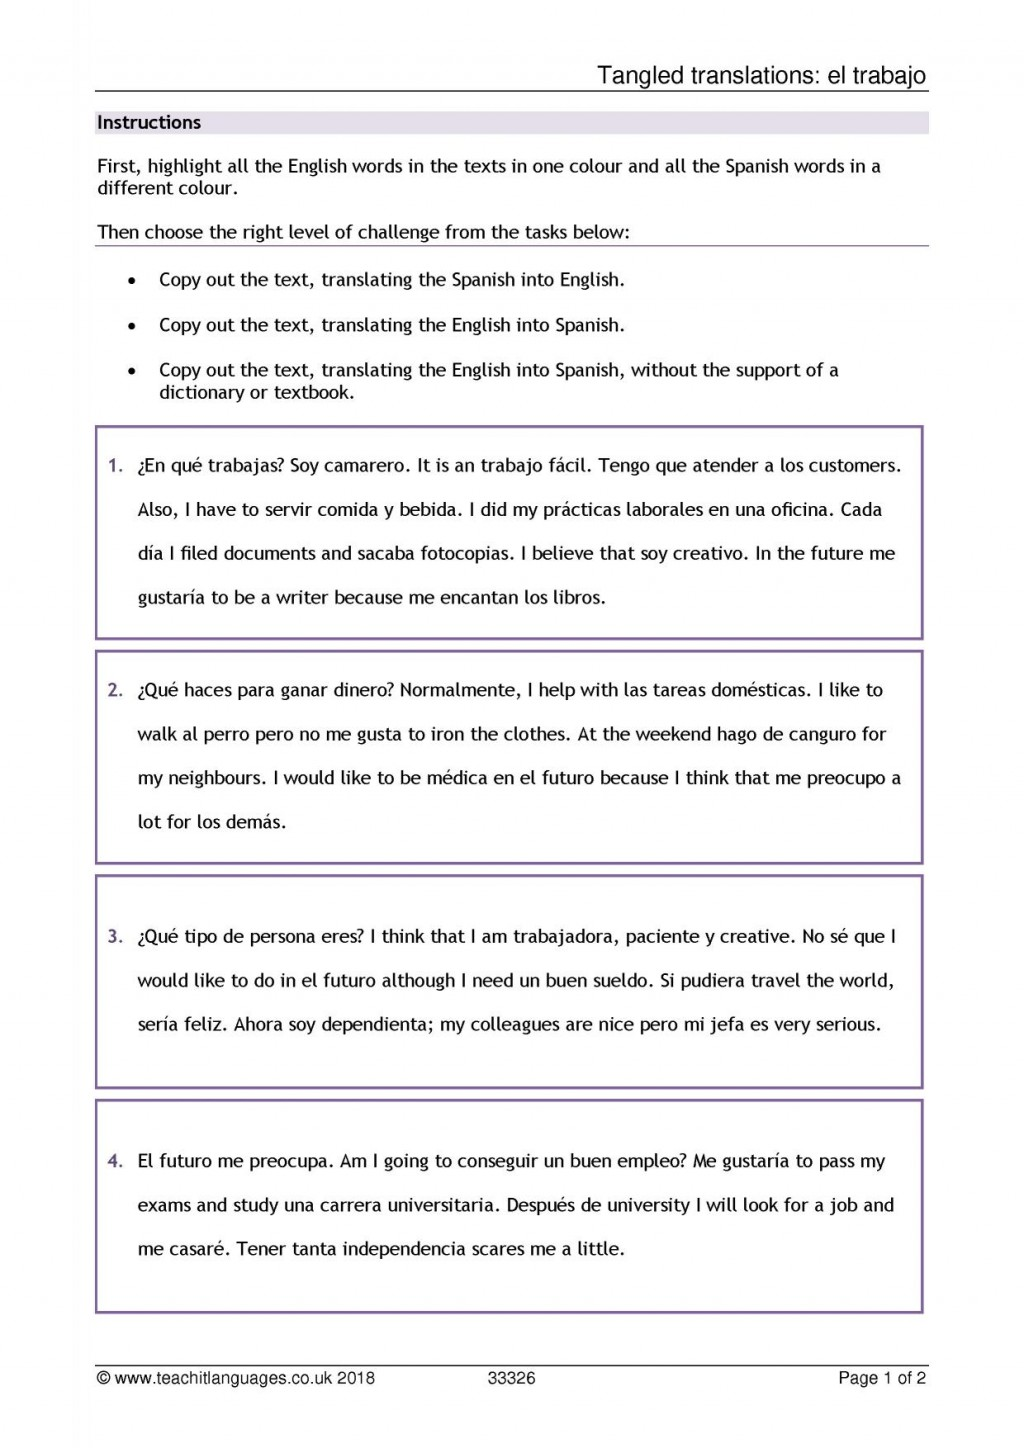 008 X78302 Php Pagespeed Ic 0xojul 6nq Essay Example Translate My Into Remarkable Spanish Large